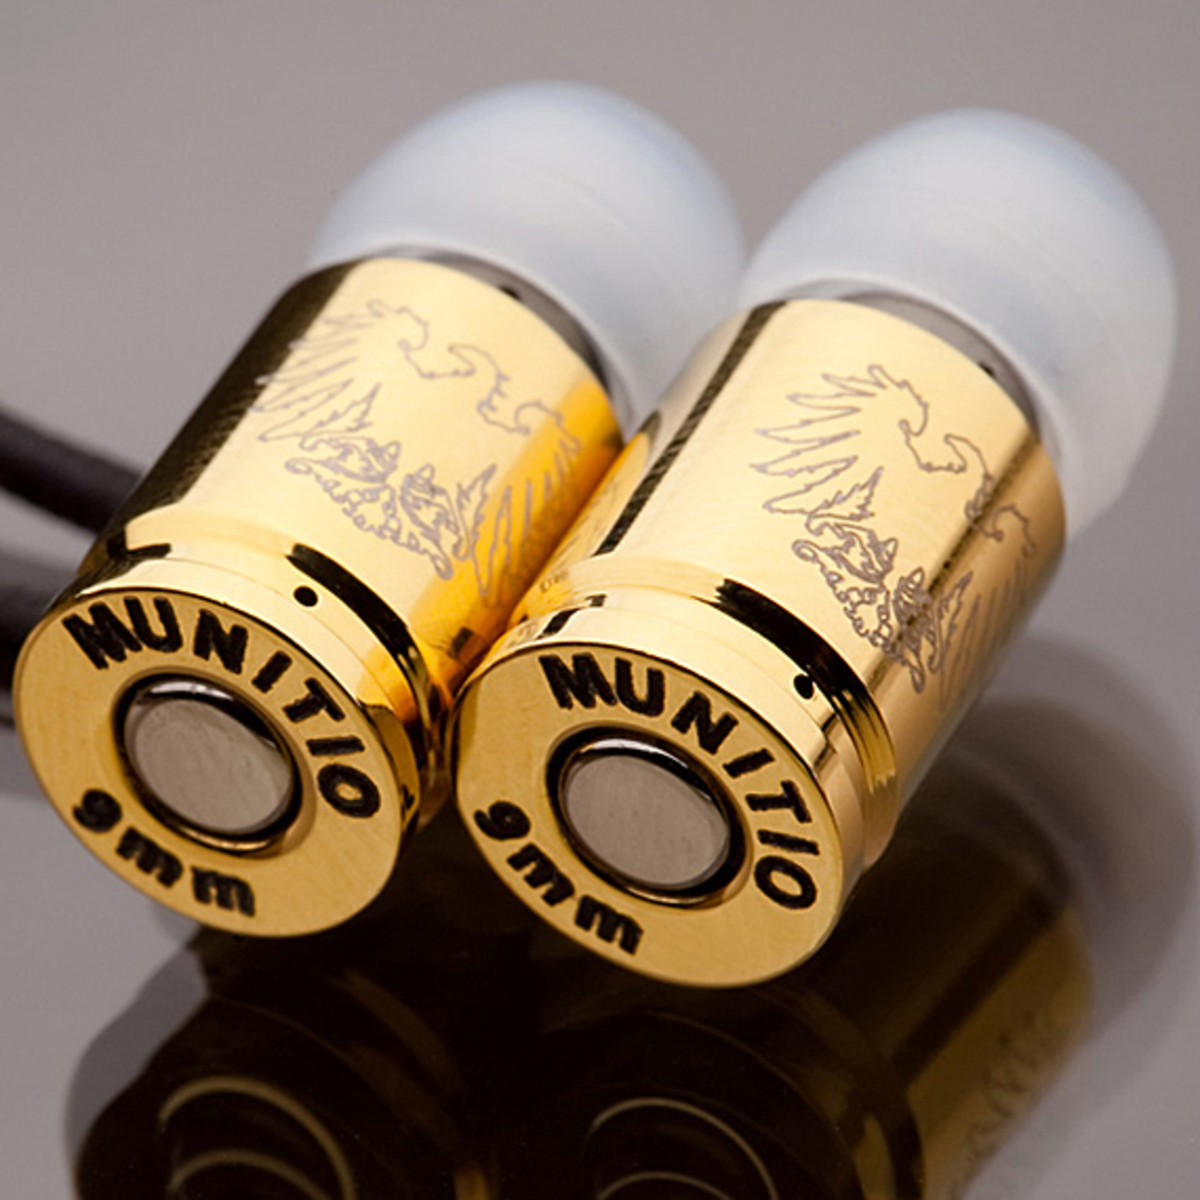 munito-siti-9mm-gold-00